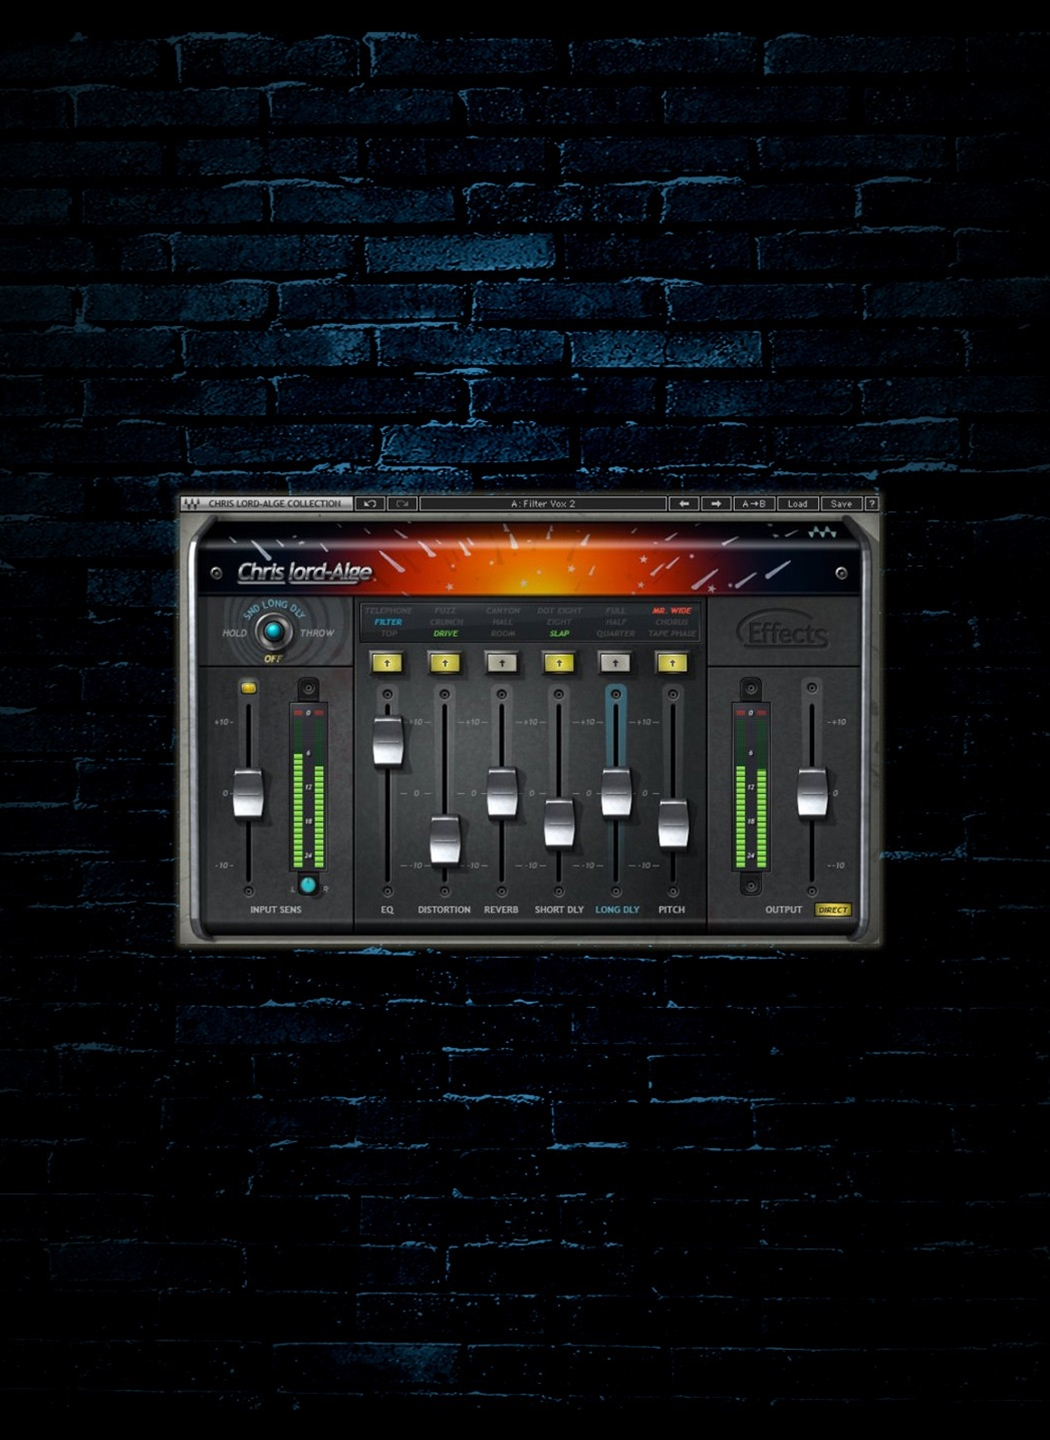 Waves cla-76 compressor/limiter dynamics plug-in cla76tdm b&h.